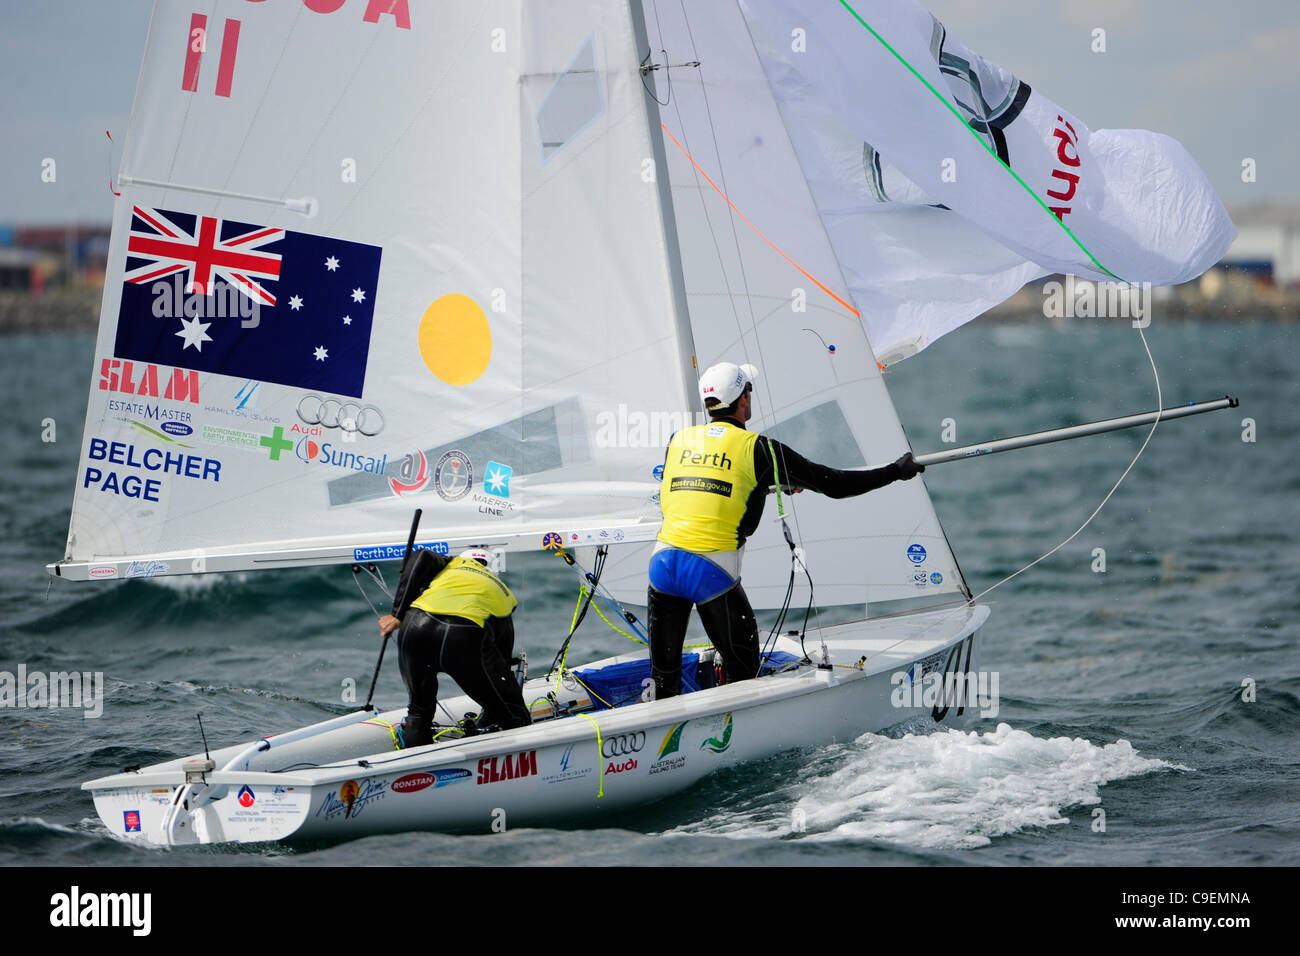 09.12.2011. Perth, Australia. Mathew Belcher (AUS) and Malcolm Page (AUS) adjust their headsail in the 470 men's - Stock Image